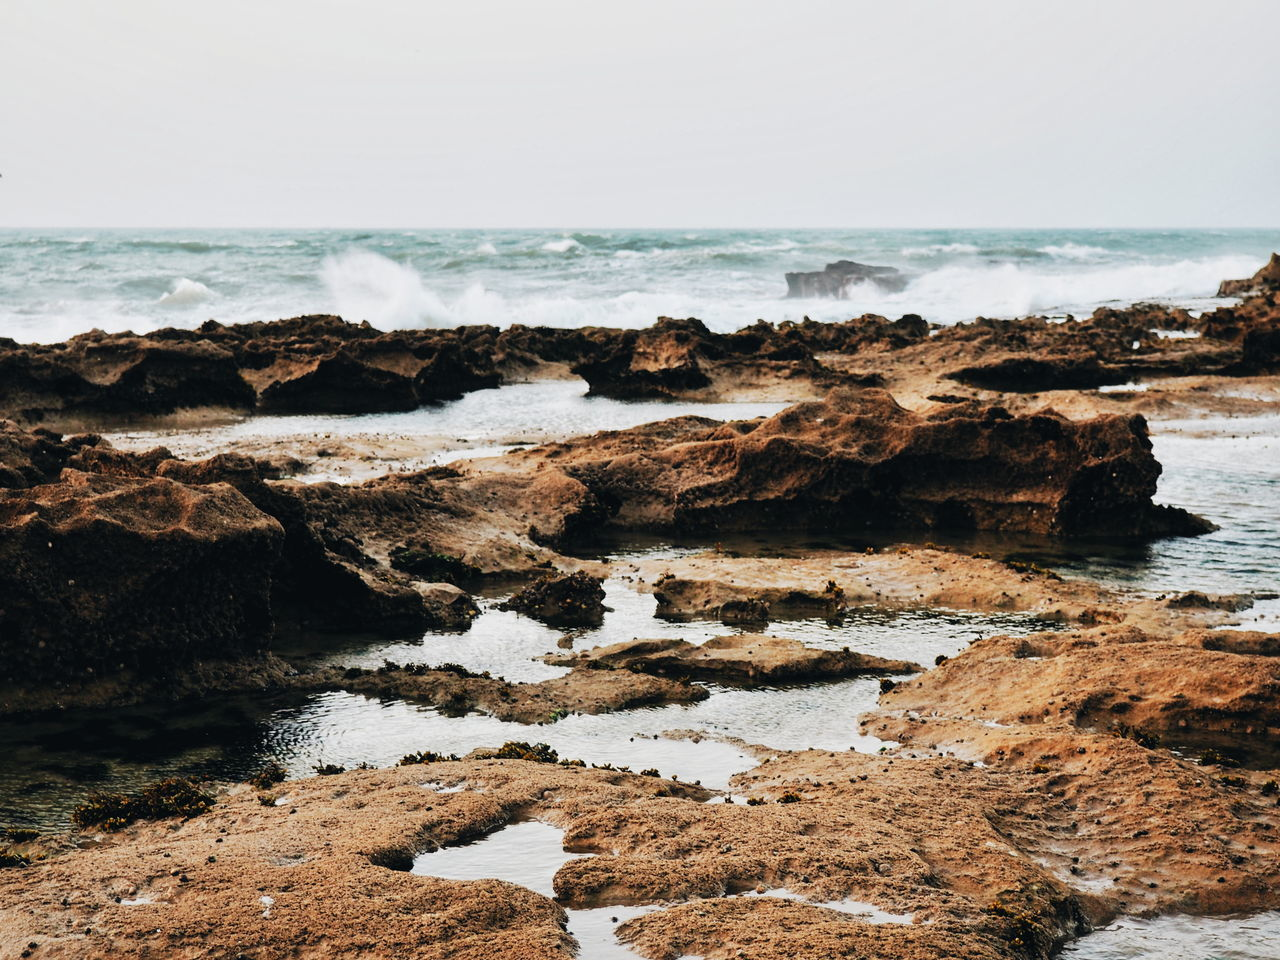 Sea Beach Nature Horizon Over Water Water Rock - Object Coastline Wave Day Scenics Sky No People Outdoors Beauty In Nature Beachphotography Rocks Rocks And Water Morocco 🇲🇦 Morocco Essaouira Nature Coastline Sea And Sky Nature_collection Travel Destinations